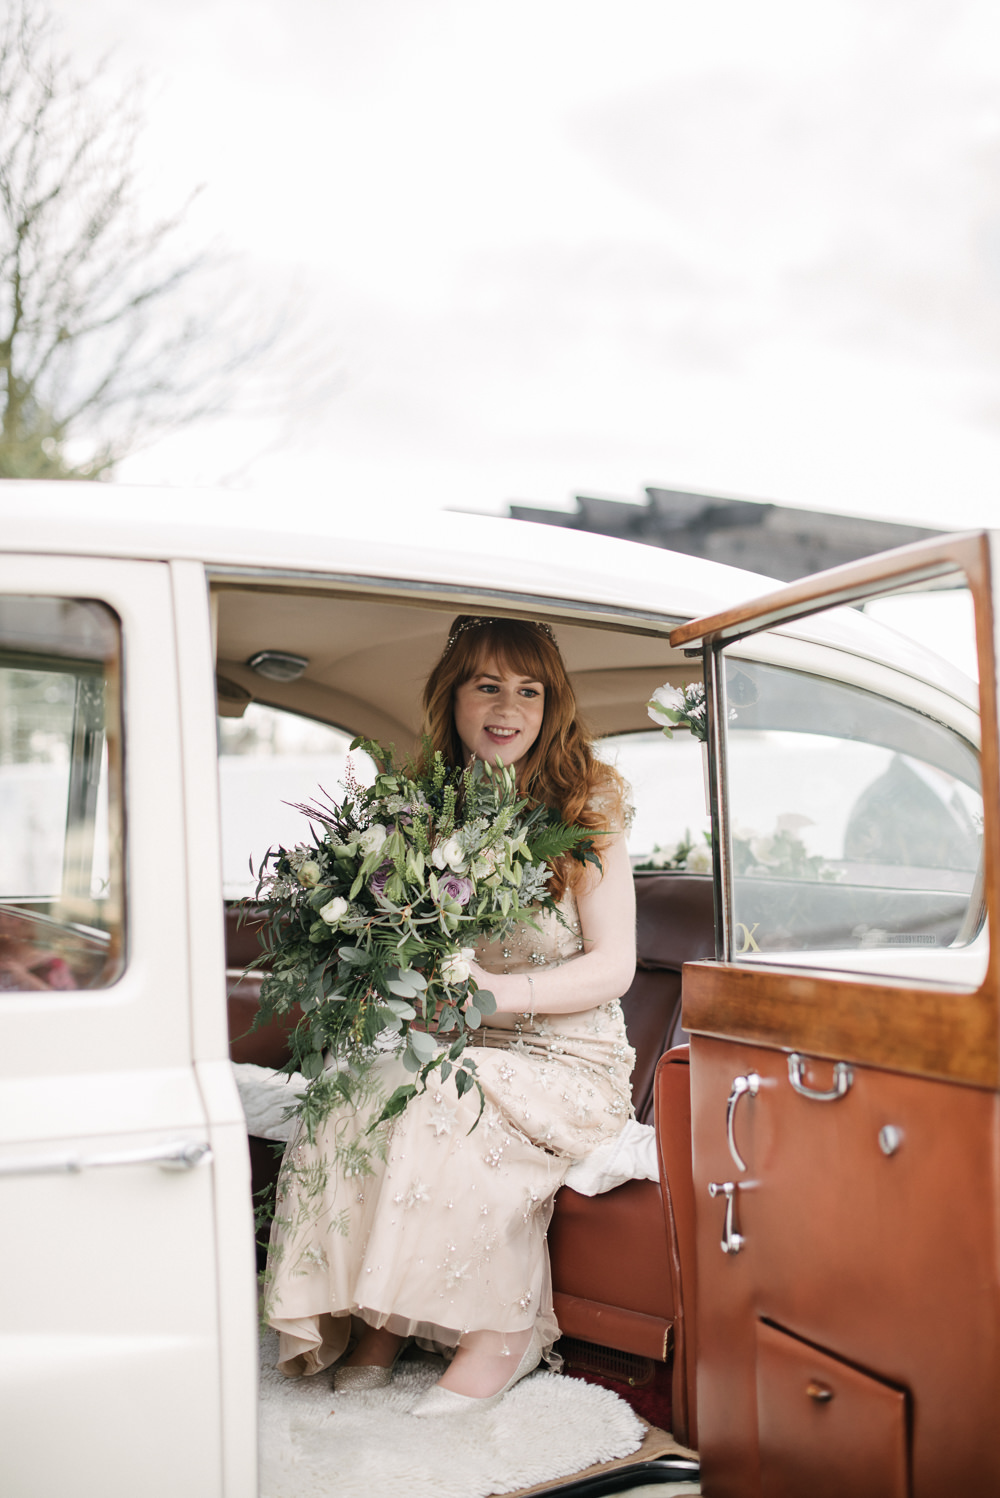 Bride Bridal Embellished Jenny Packham Foliage Tumbling Bouquet Transport Car Orange Tree House Wedding Winter You Them Us Photography